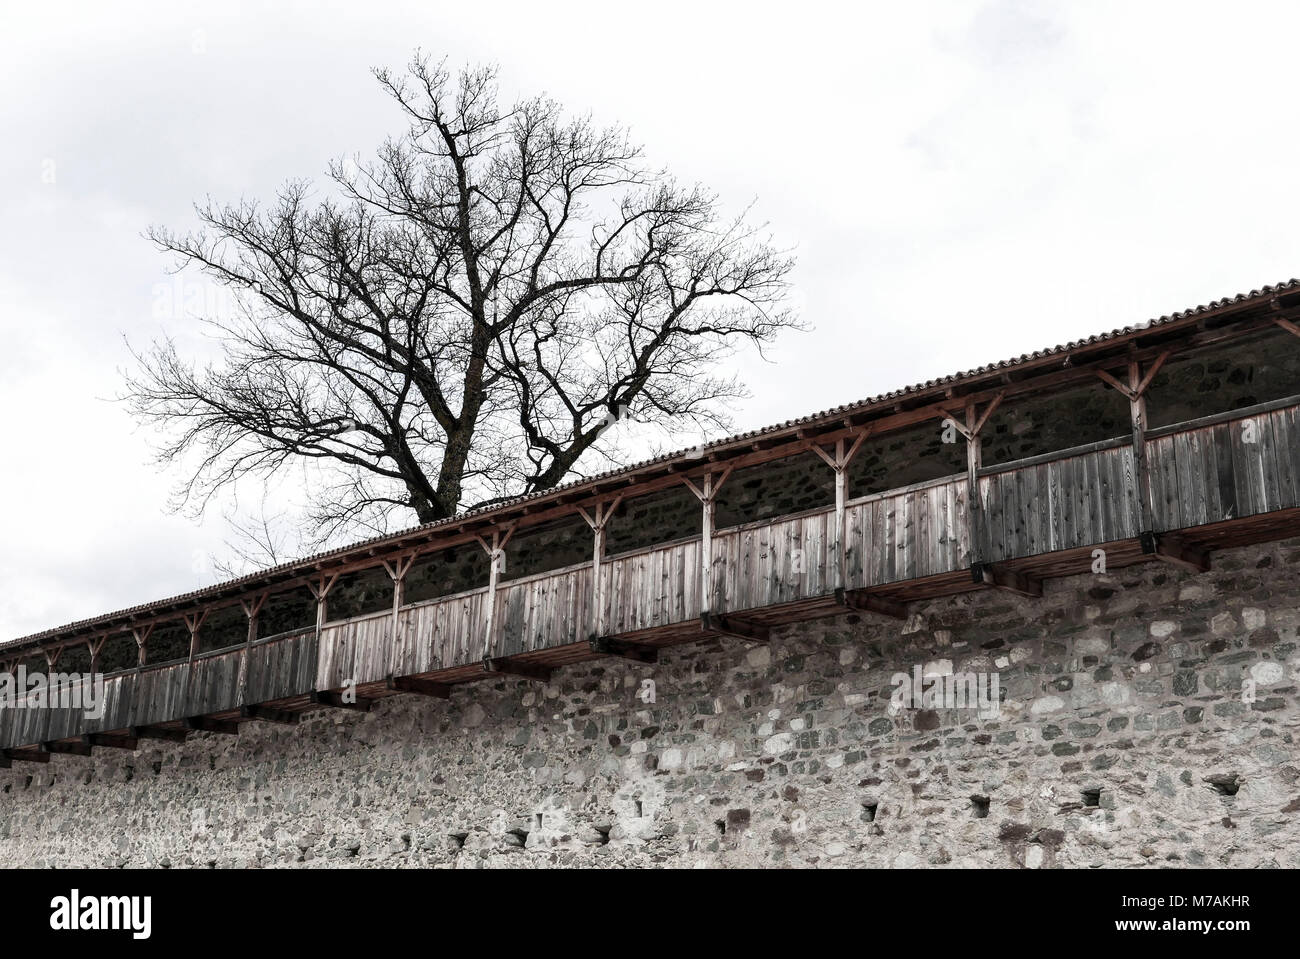 round path and city wall of Glurns with leafless tree, Vinschau, South Tirol - Stock Image